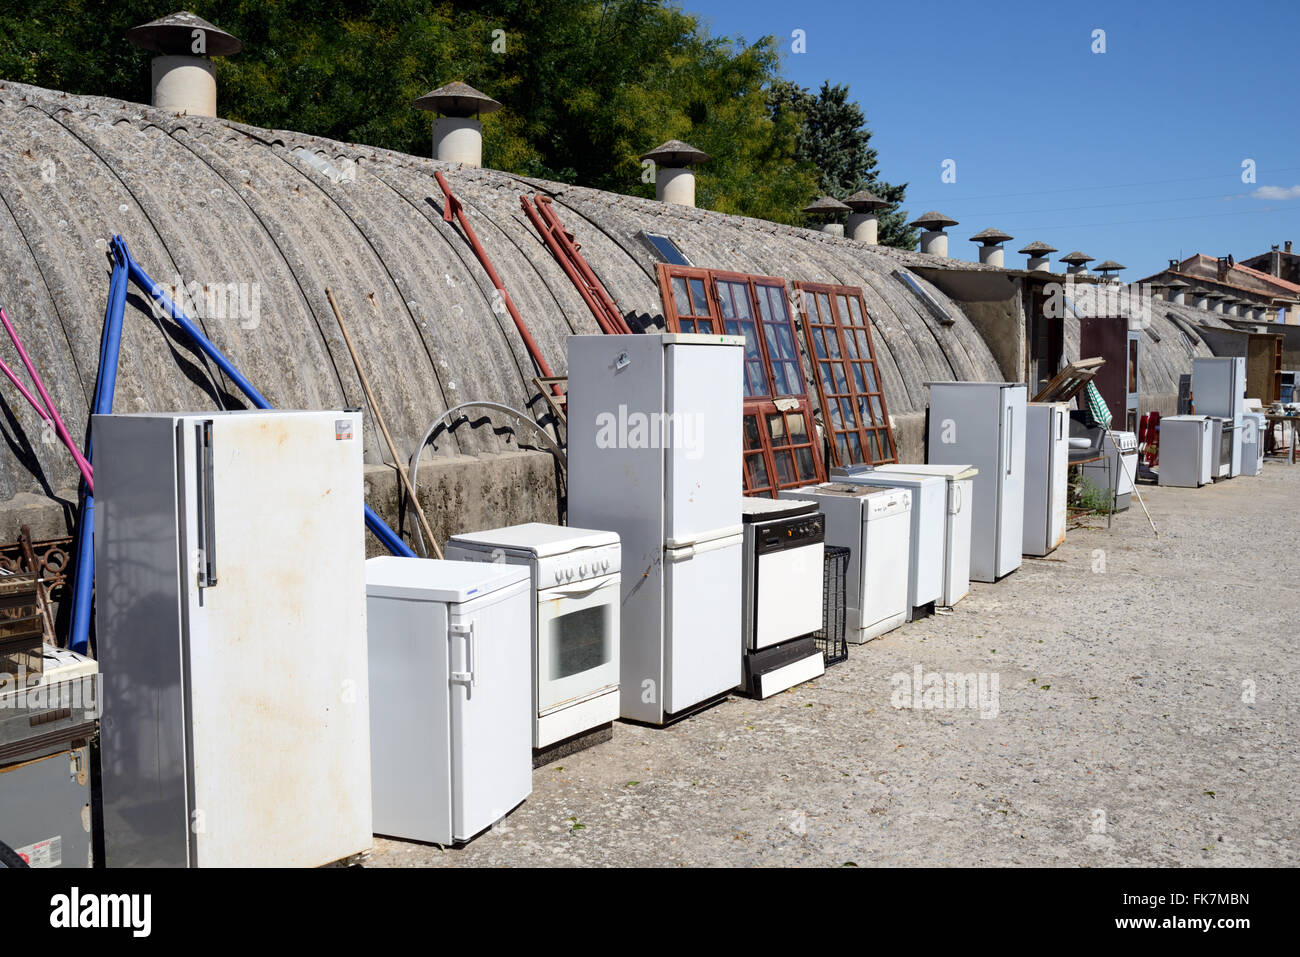 Second-Hand, Secondhand or Recycled White Goods or Domestic Appliances Cookers & Fridges For sale in a Junk - Stock Image